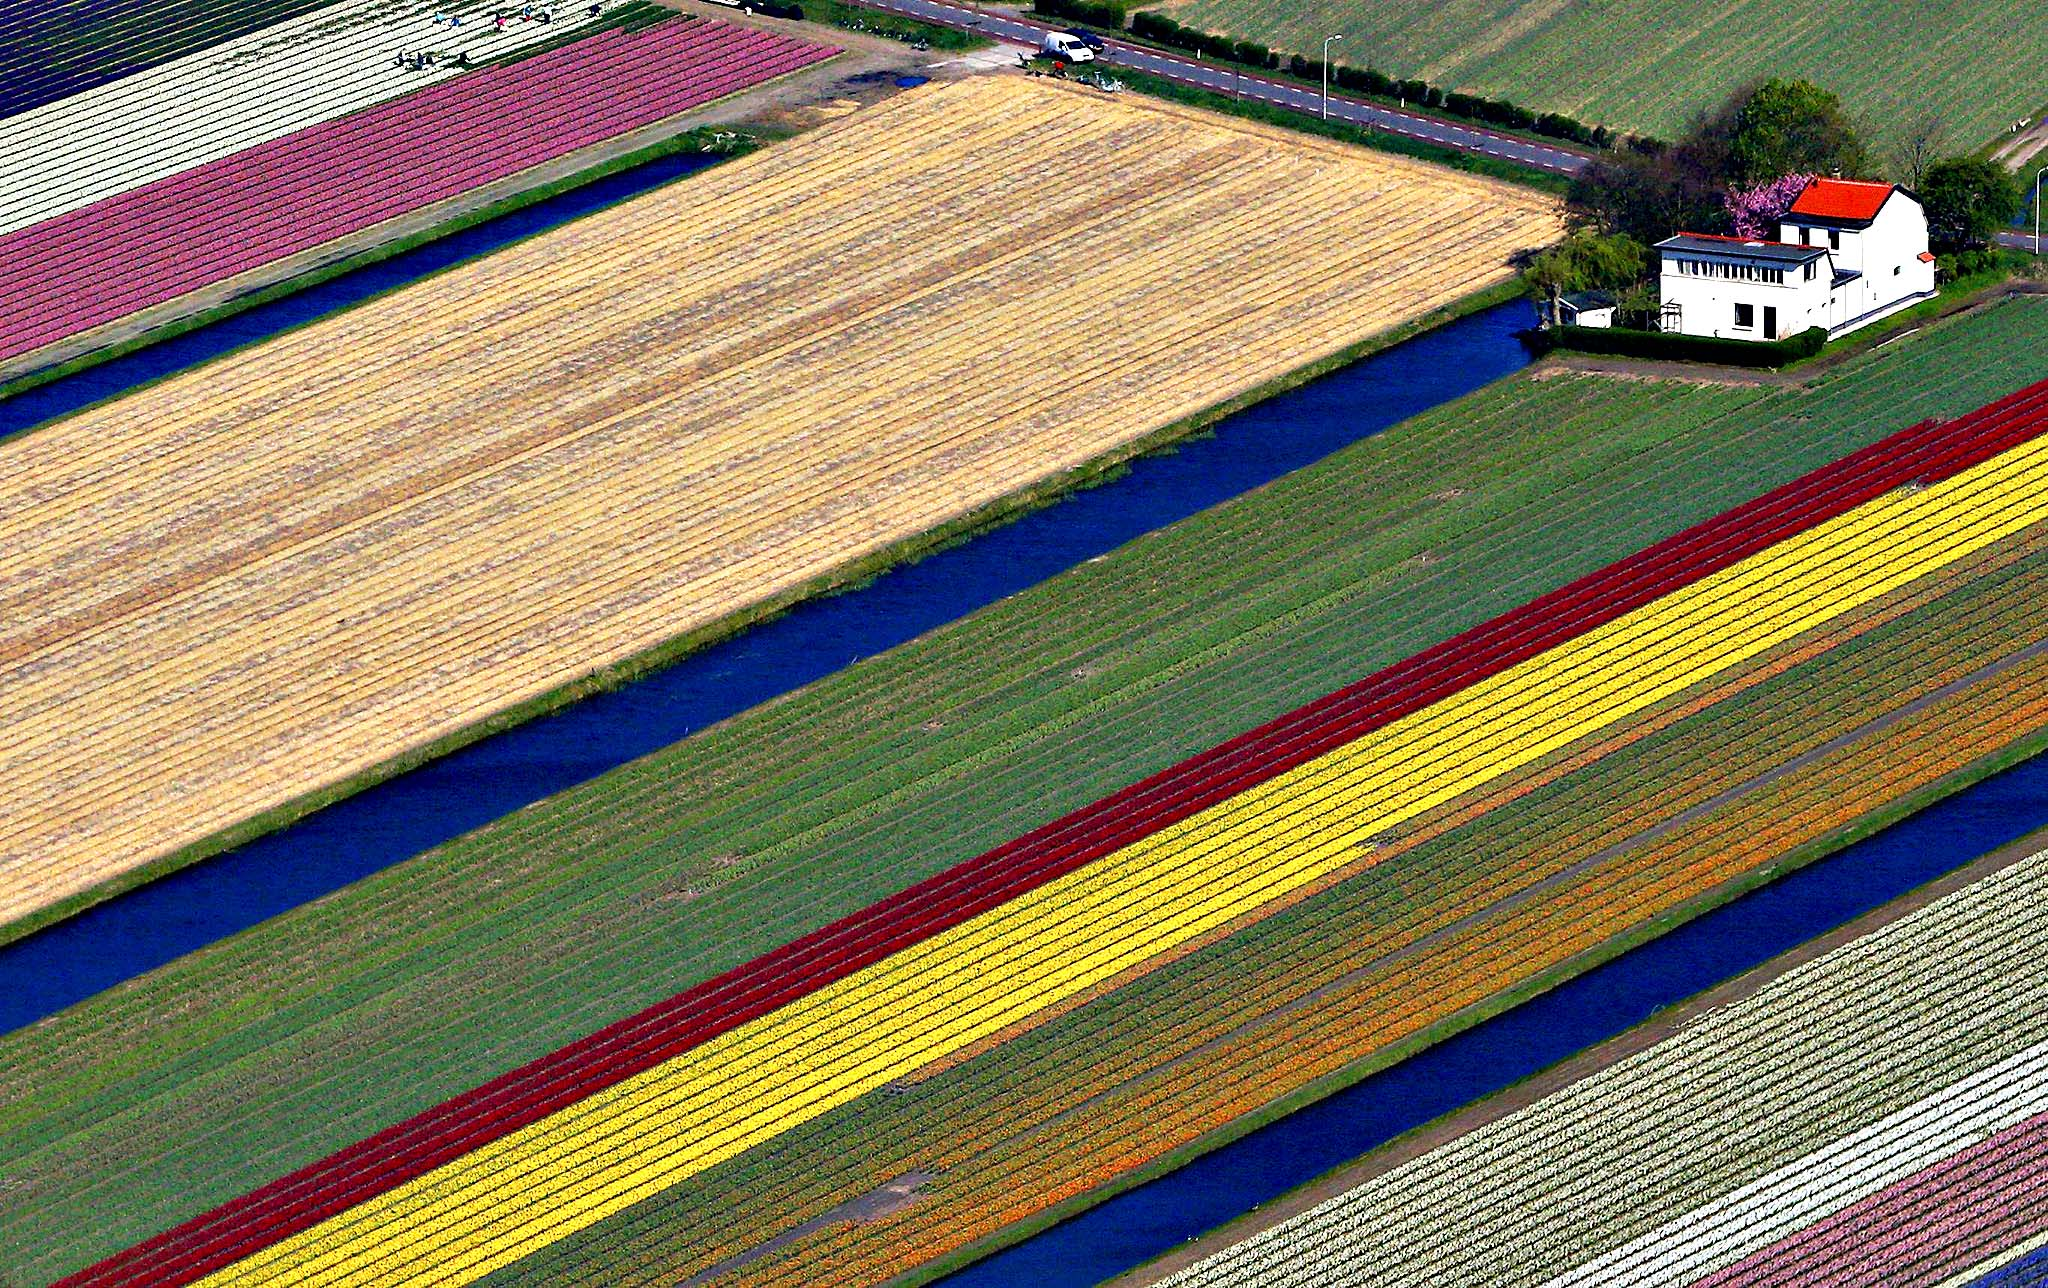 Aerial view of flowers fields near the Keukenhof park, also known as the Garden of Europe, in Lisse April 9, 2014. Keukenhof, employing some 30 gardeners, is considered to be the world's largest flower garden displaying millions of flowers every year.